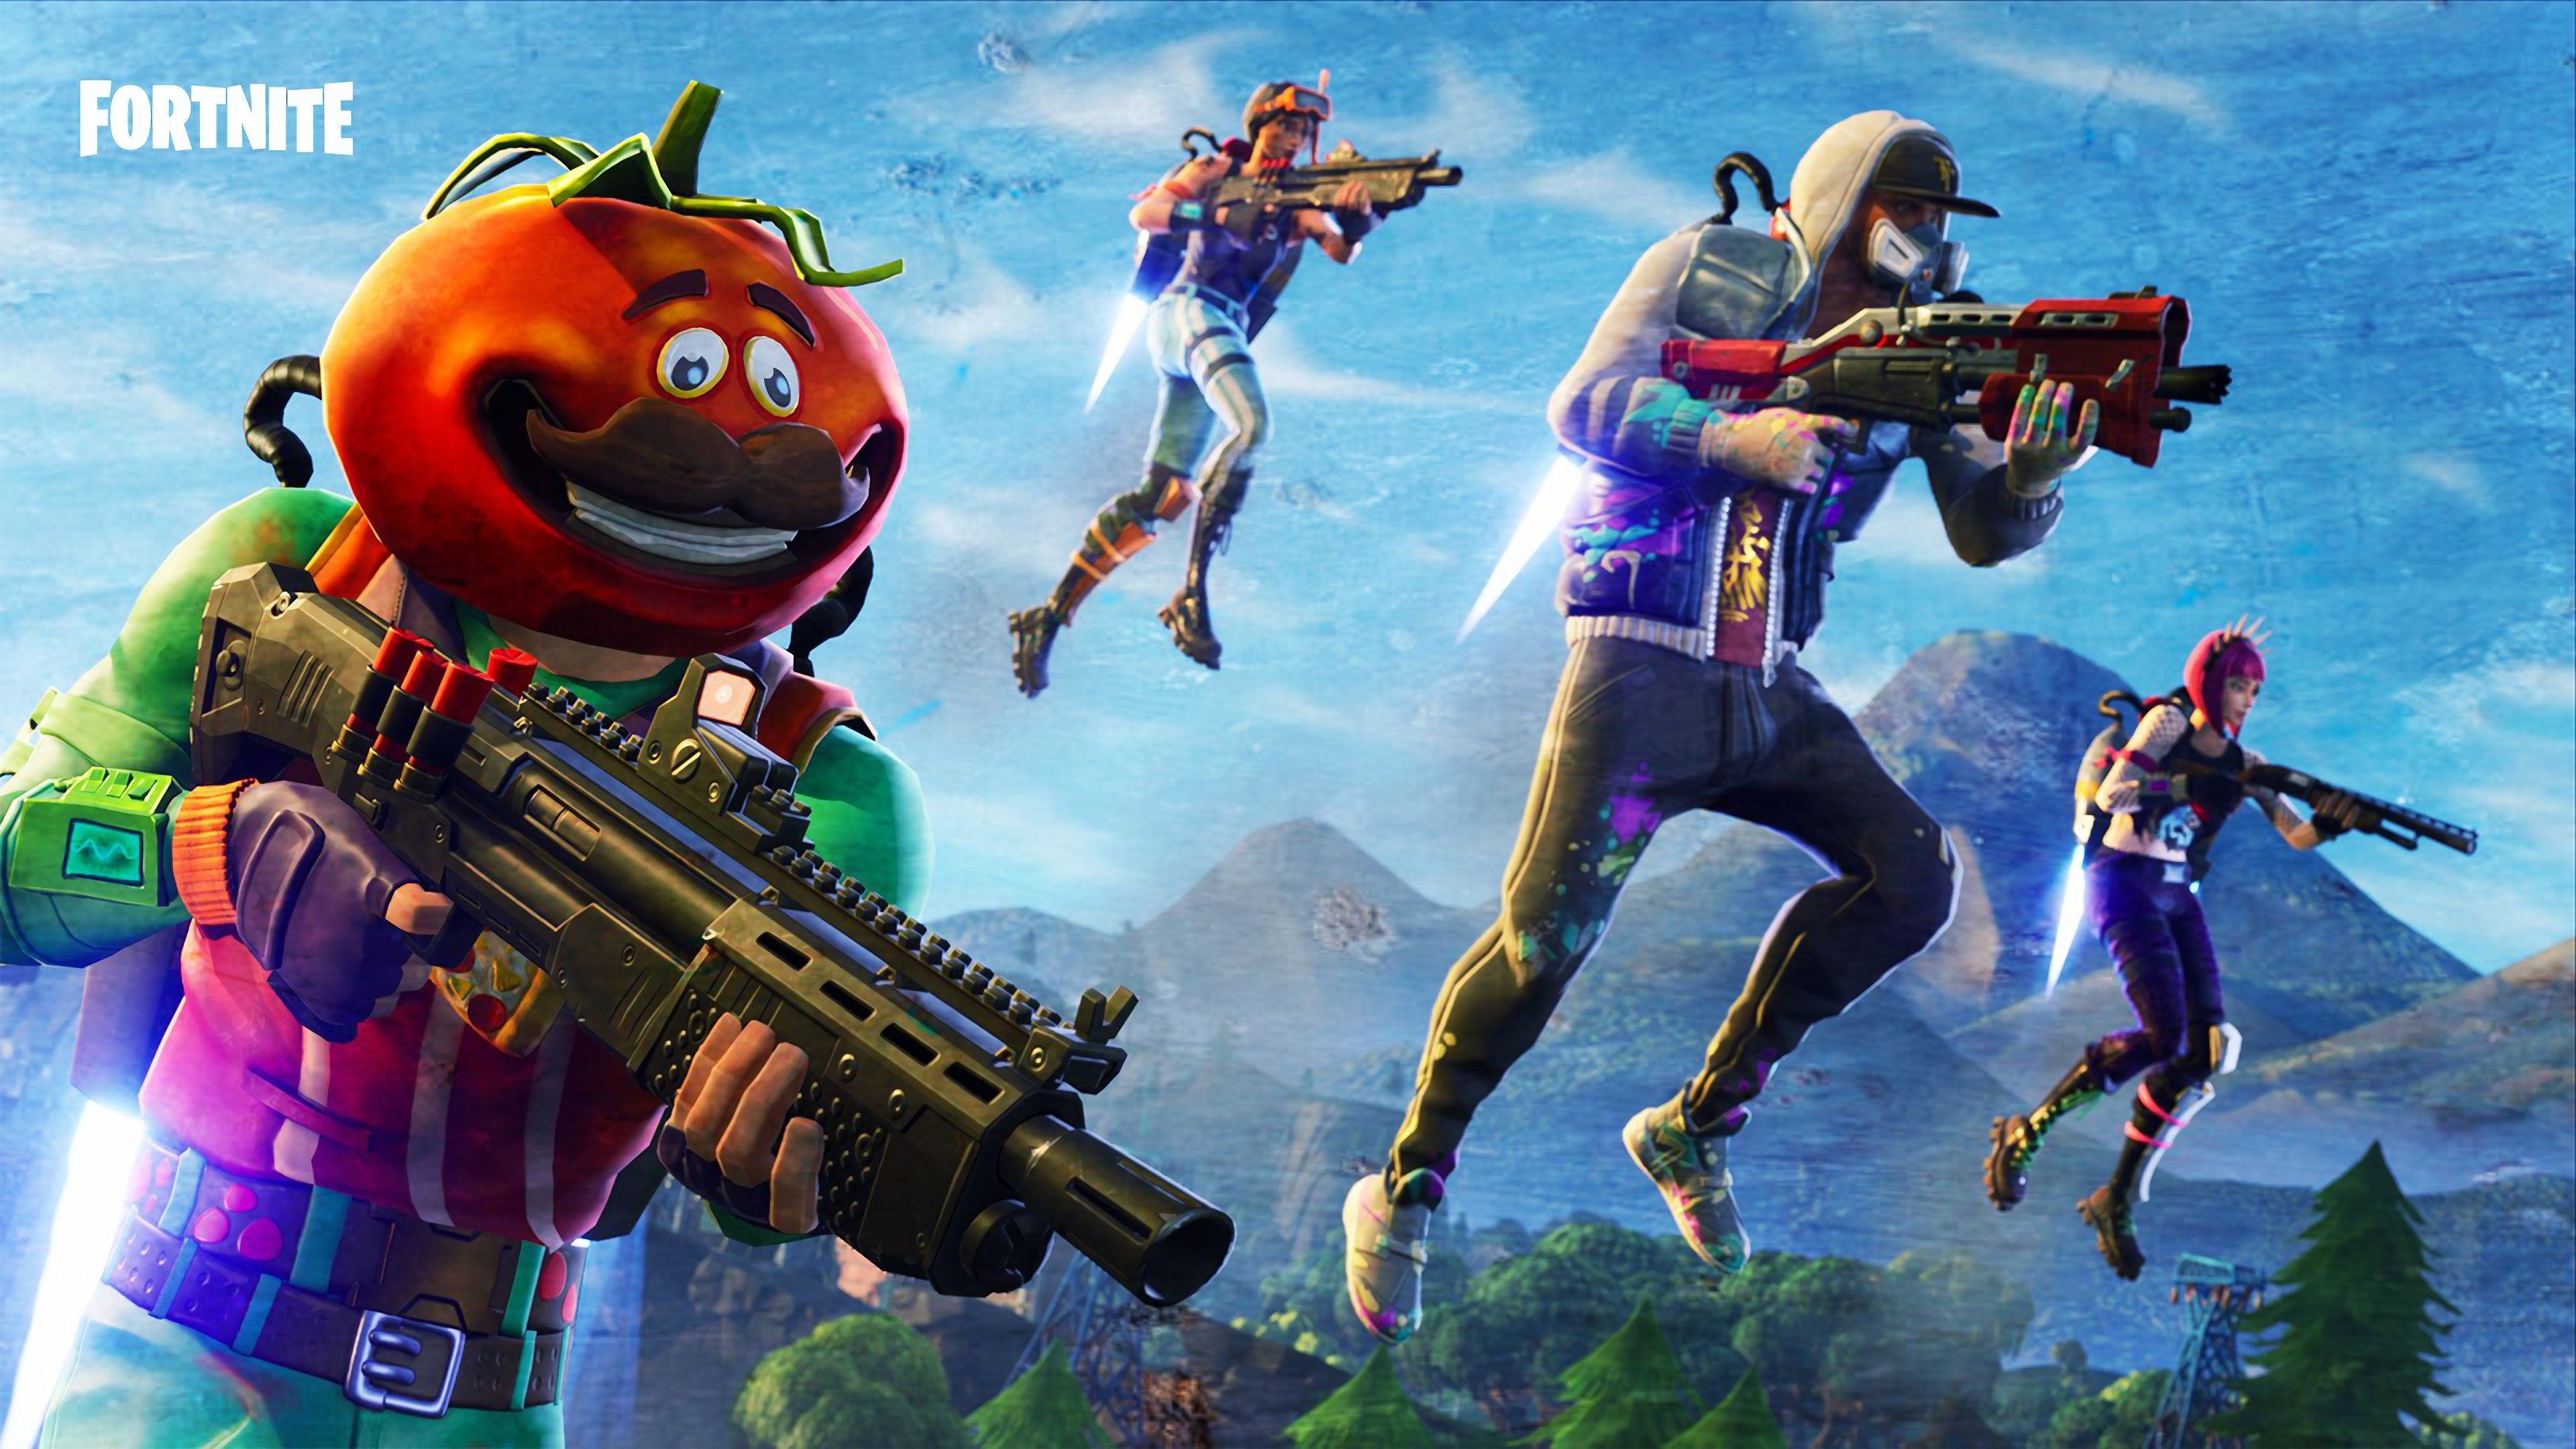 Desktop Wallpaper 2018 Video Game Fortnite Art Hd: Fortnite 2018 Game Wallpaper